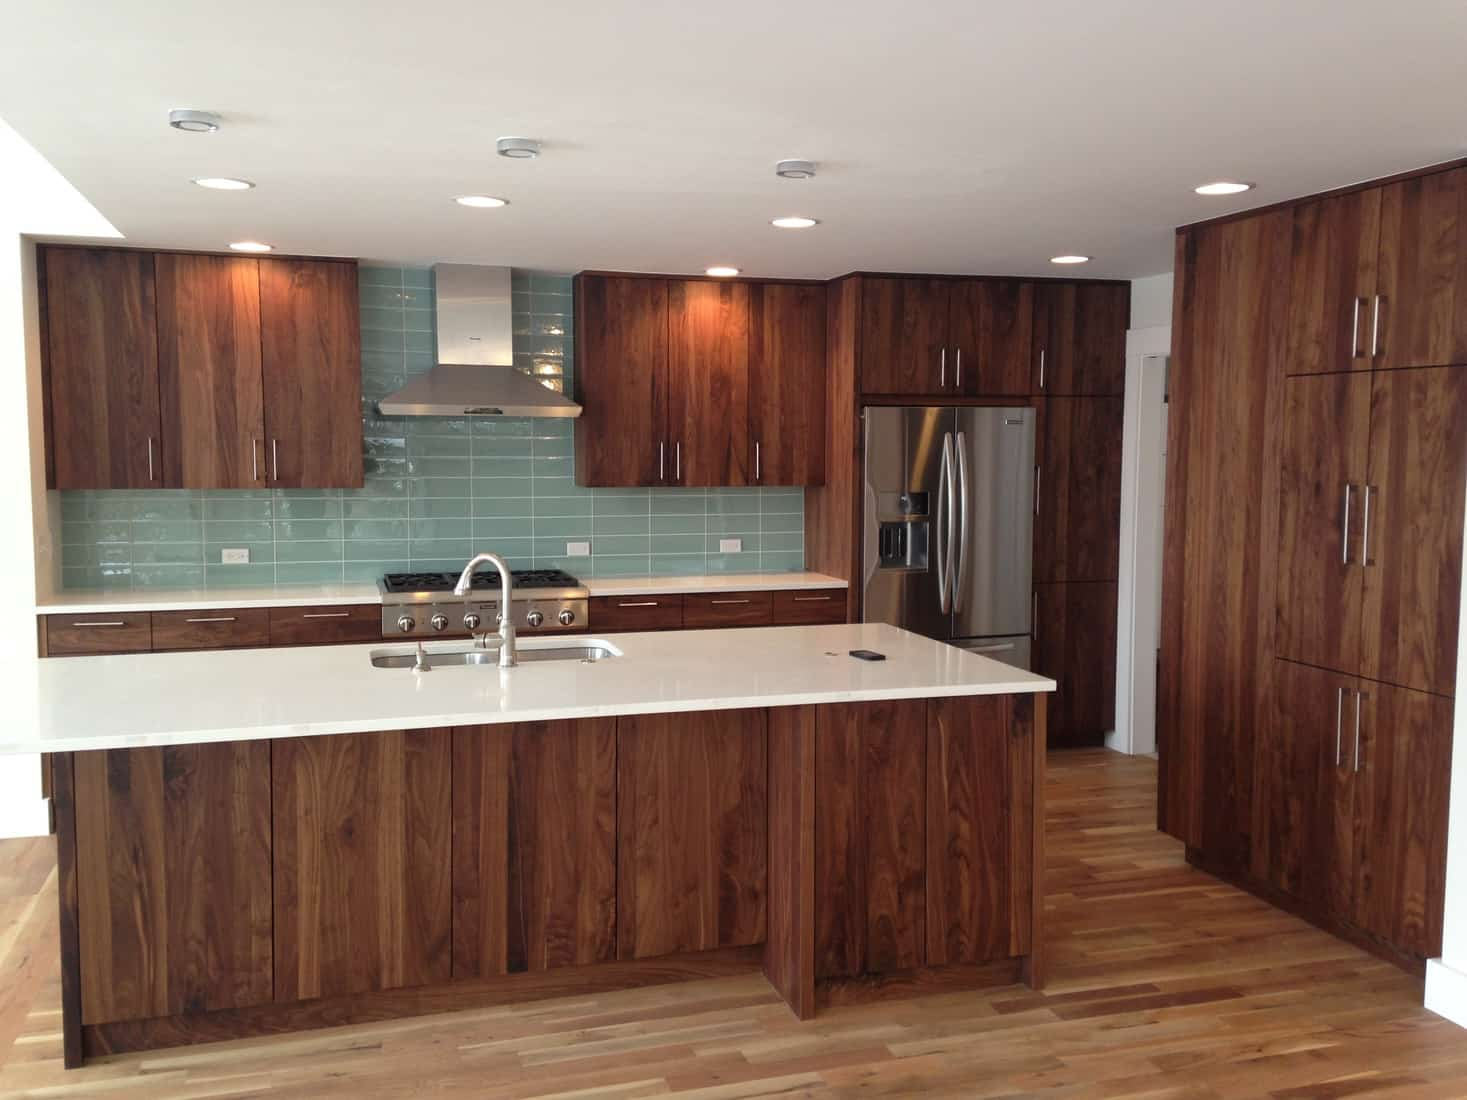 Kitchen Remodel Boulder Project Update South Boulder Pop Top Home Addition Melton